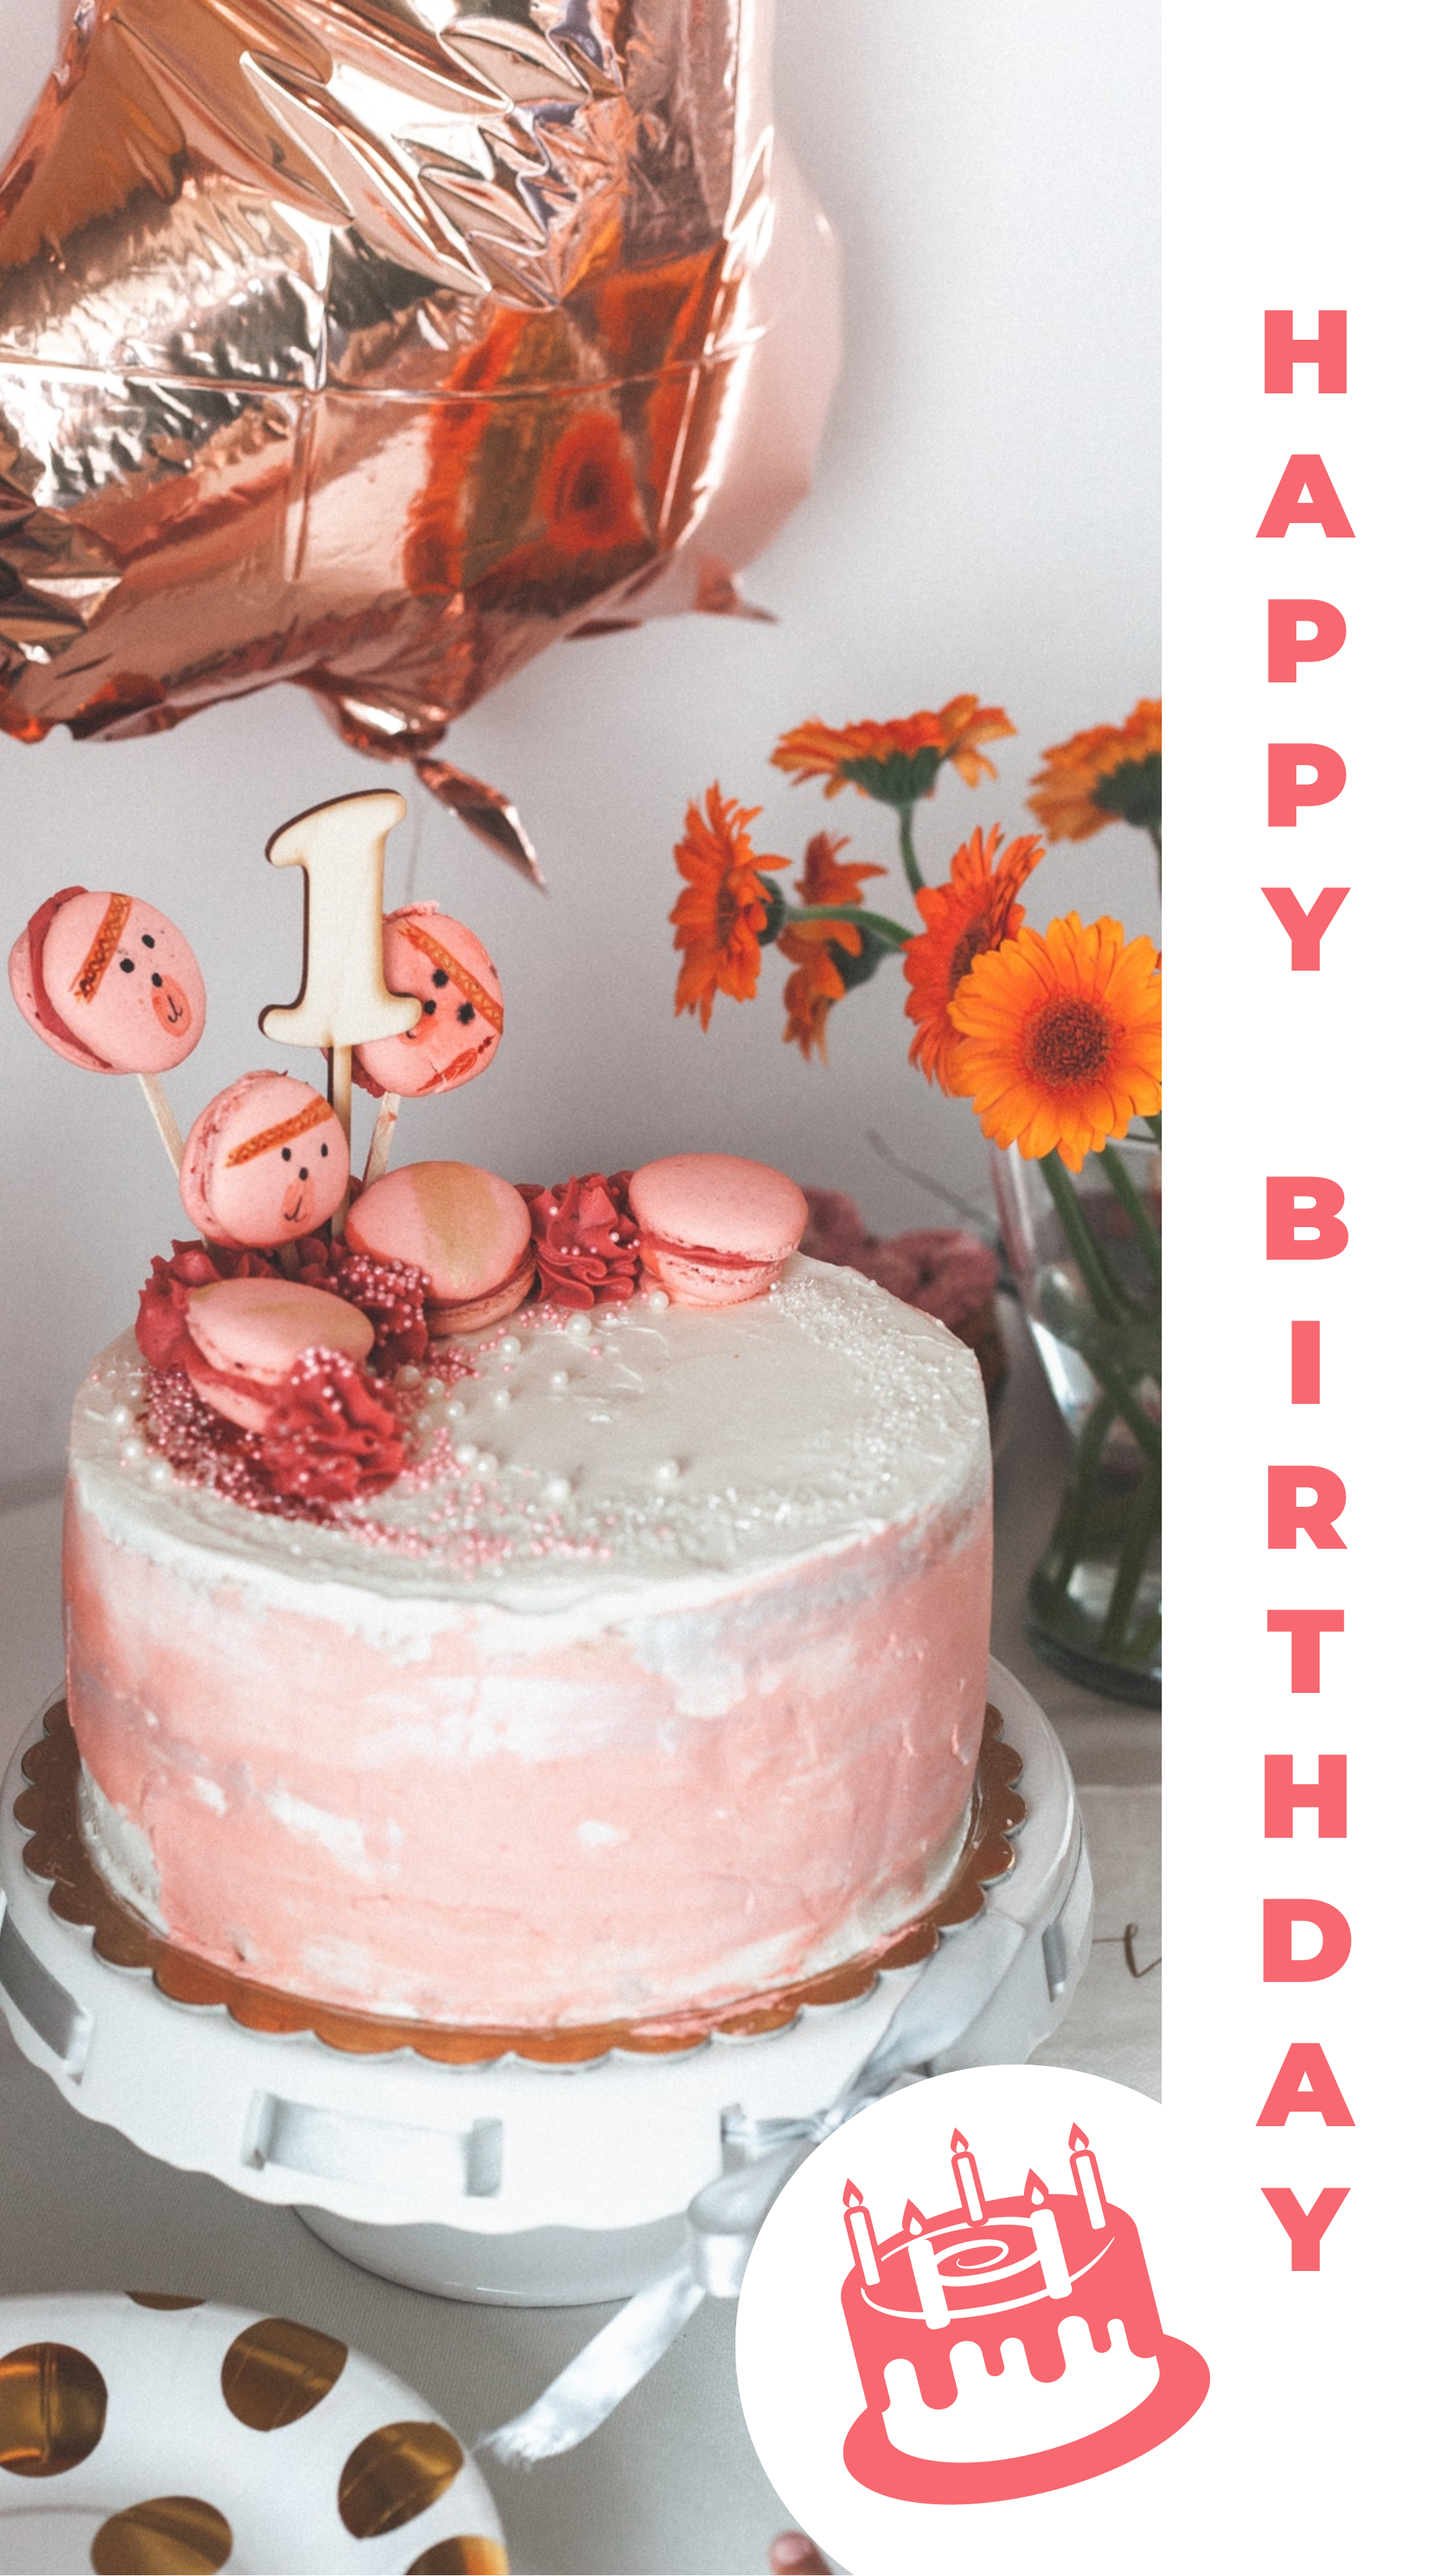 Happy Birthday 7 Adorable Story Ideas For Instagram 2019